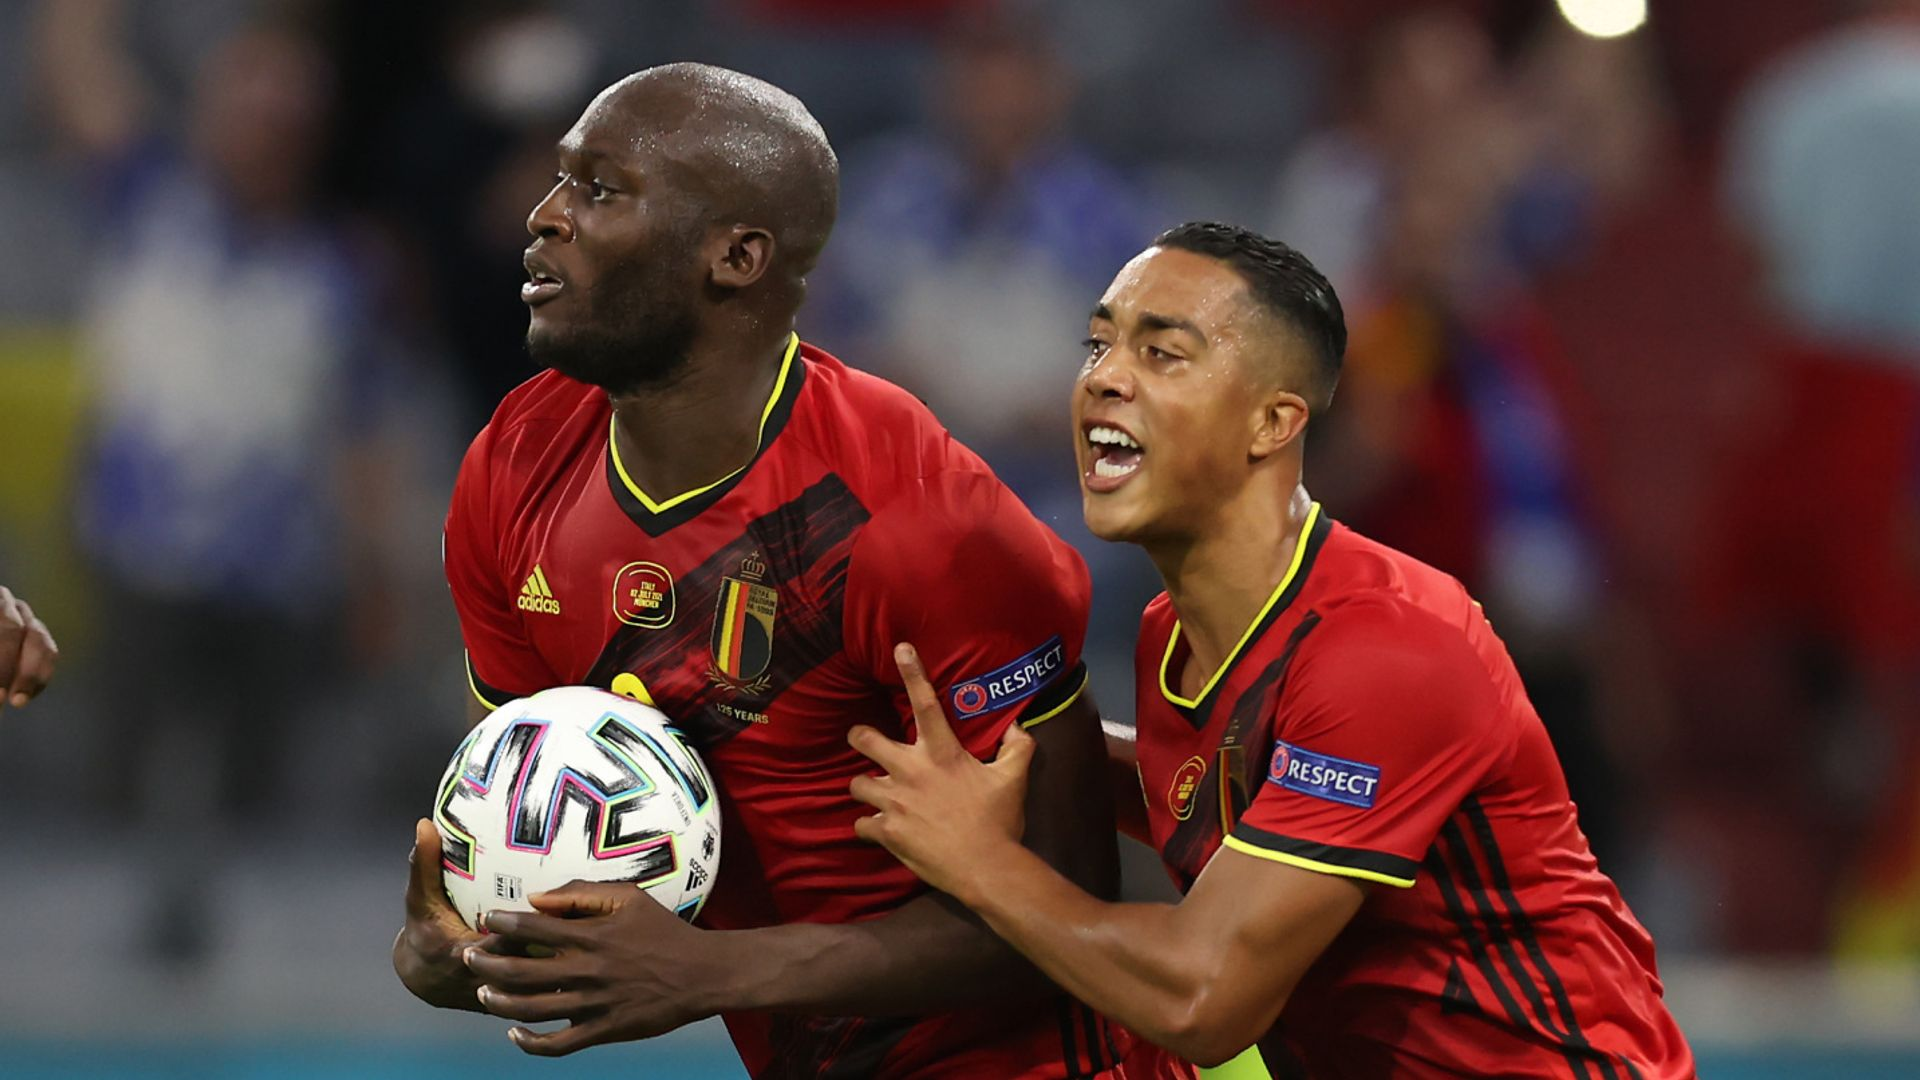 Lukaku pulls one back against Italy LIVE!